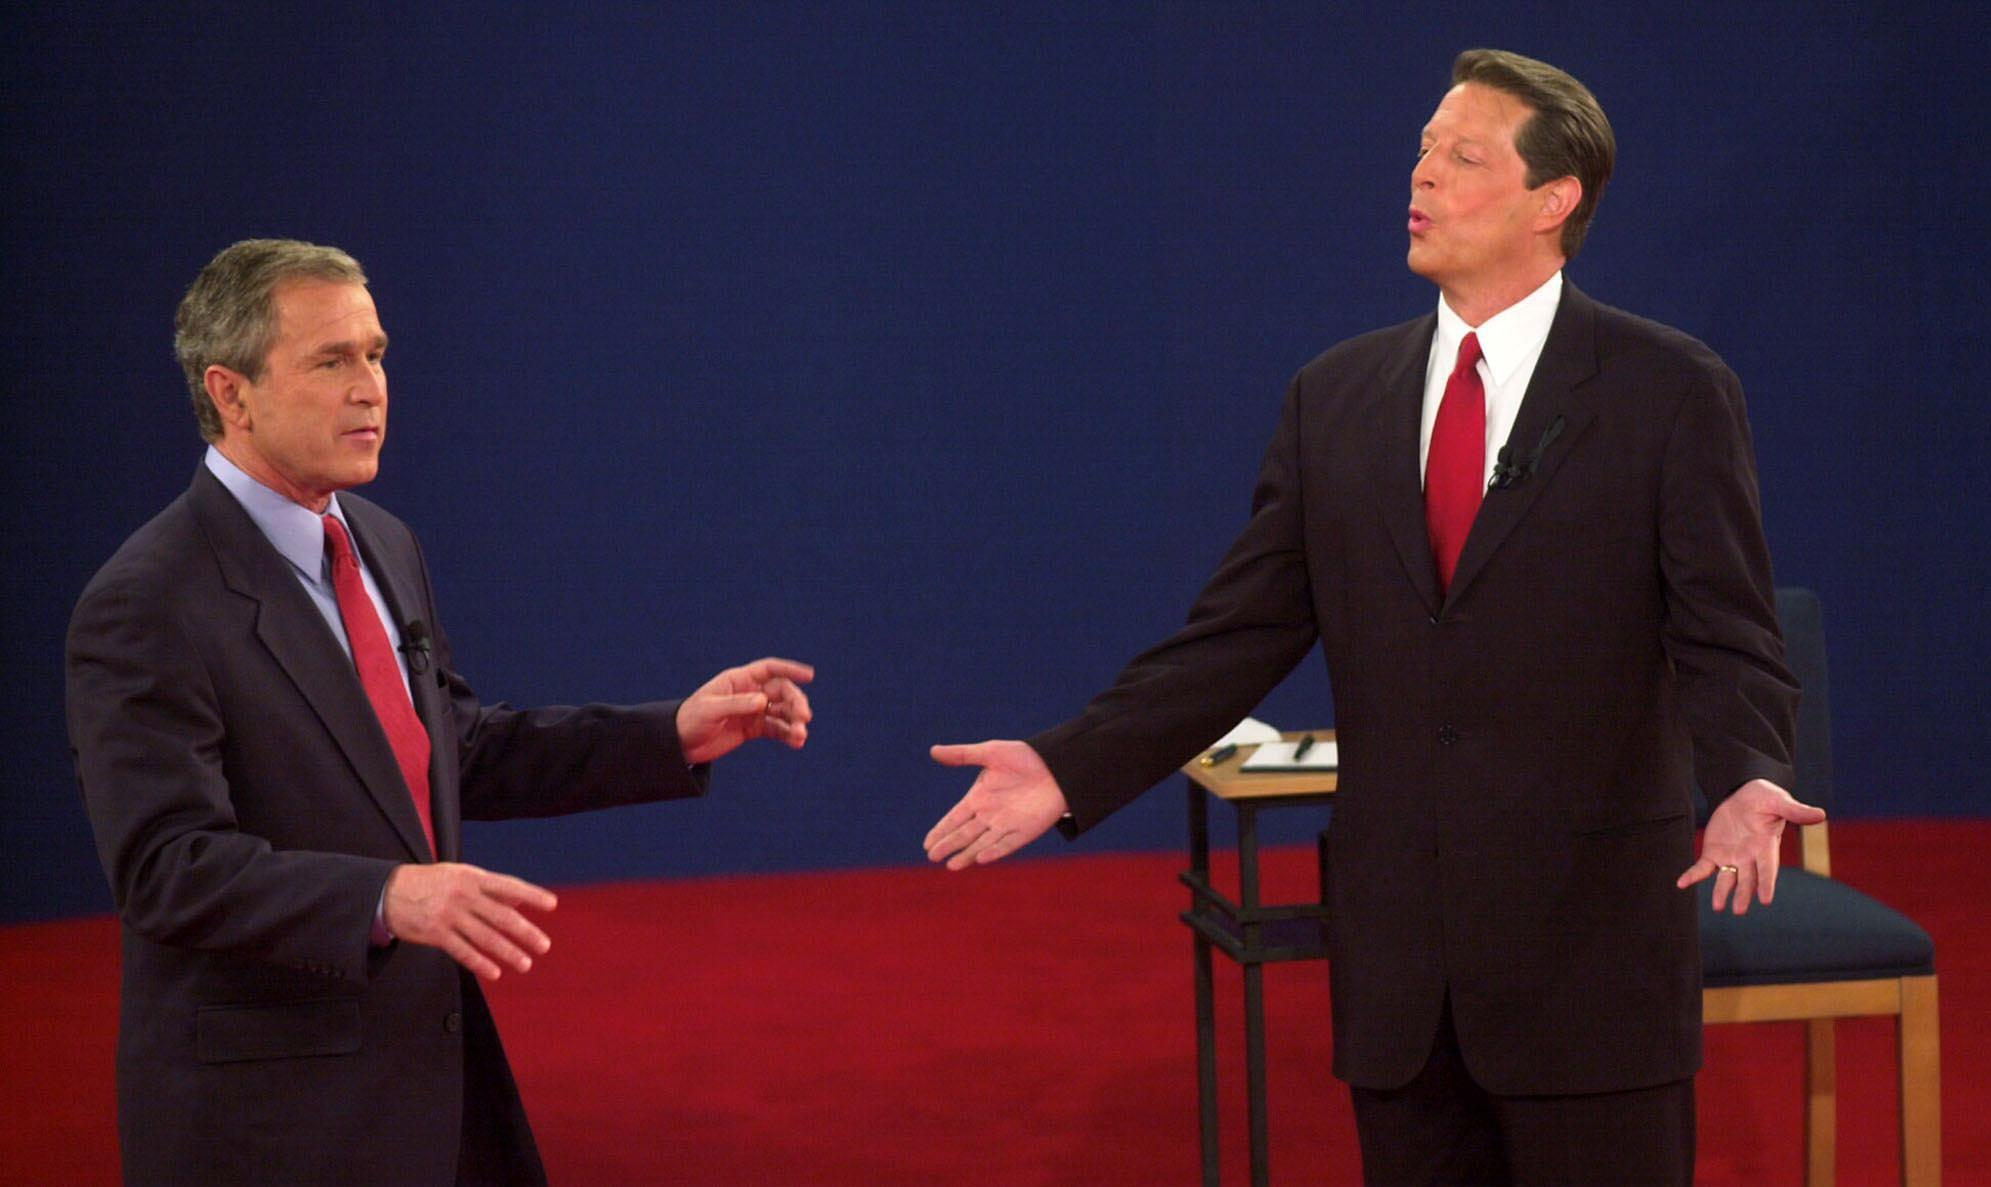 an analysis of the candidate profiles of al gore george bush and ralph nader Ralph nader, the green party candidate, got 2,185,330 pat buchanan, running with the reform party, had 430,307 harry browne, the libertarian, got 390,062 john hagelin, the natural law candidate, got 102,384 howard phillips, the constitution party candidate, garnered 93,136 james harris, the socialist workers party candidate got 7,249.